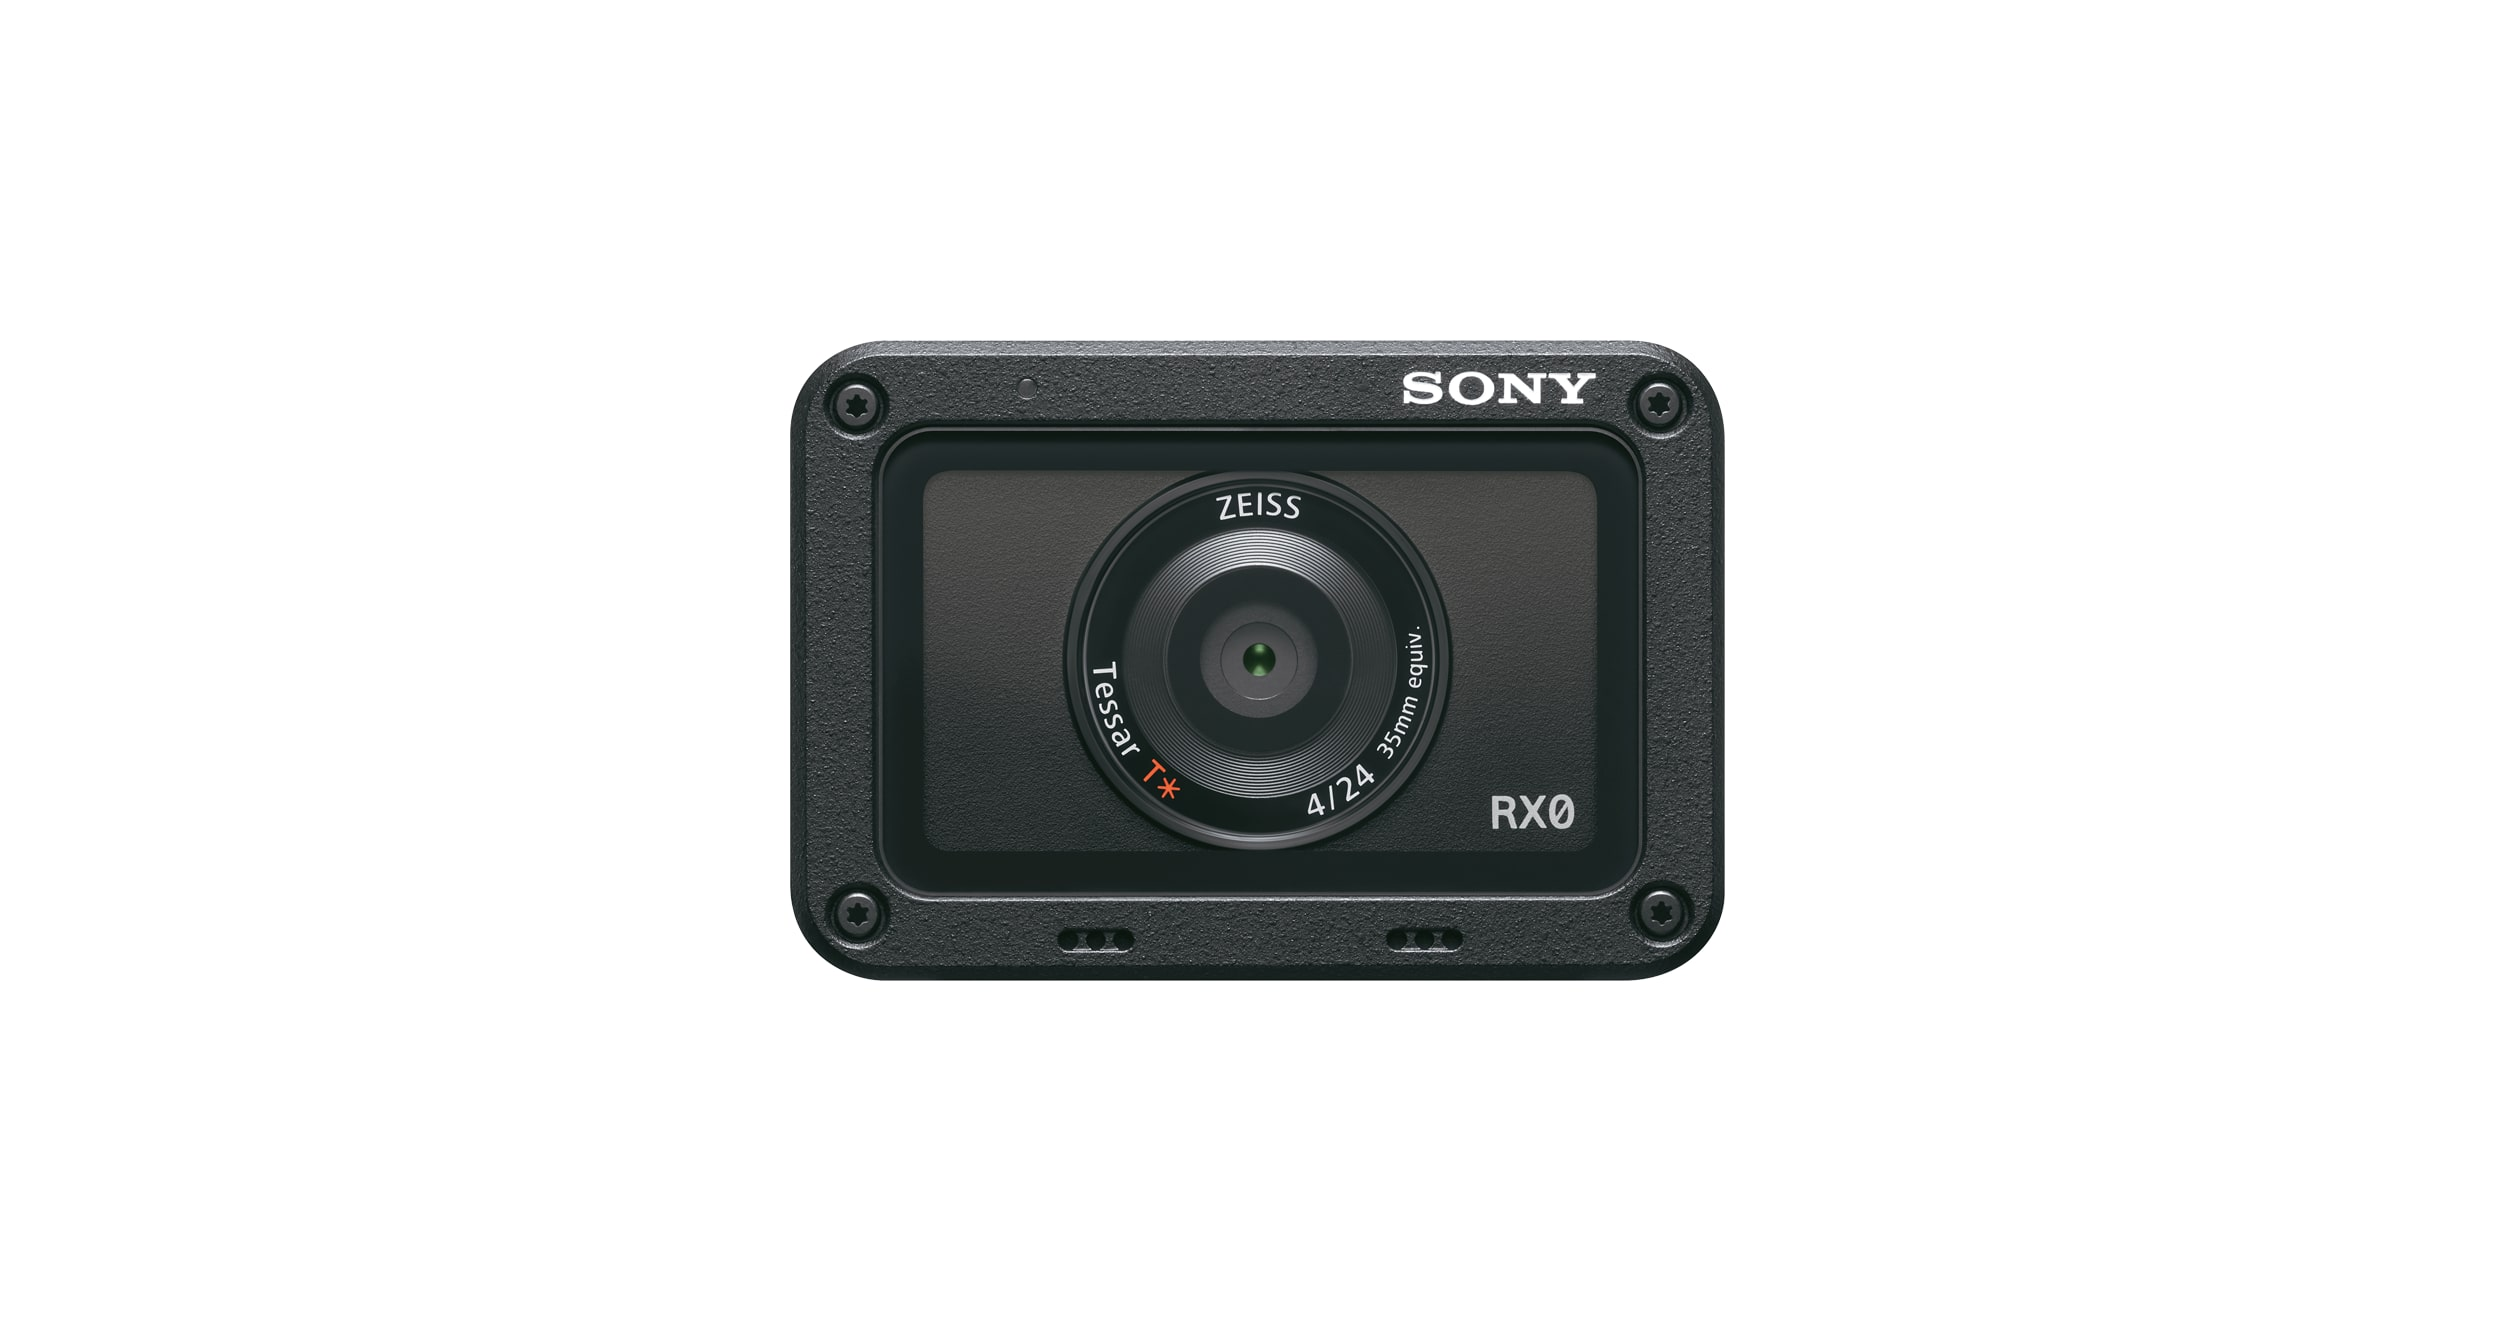 Sony Rx0 Ultra Compact Shockproof Waterproof Digital Camera Devices Parallel Flash